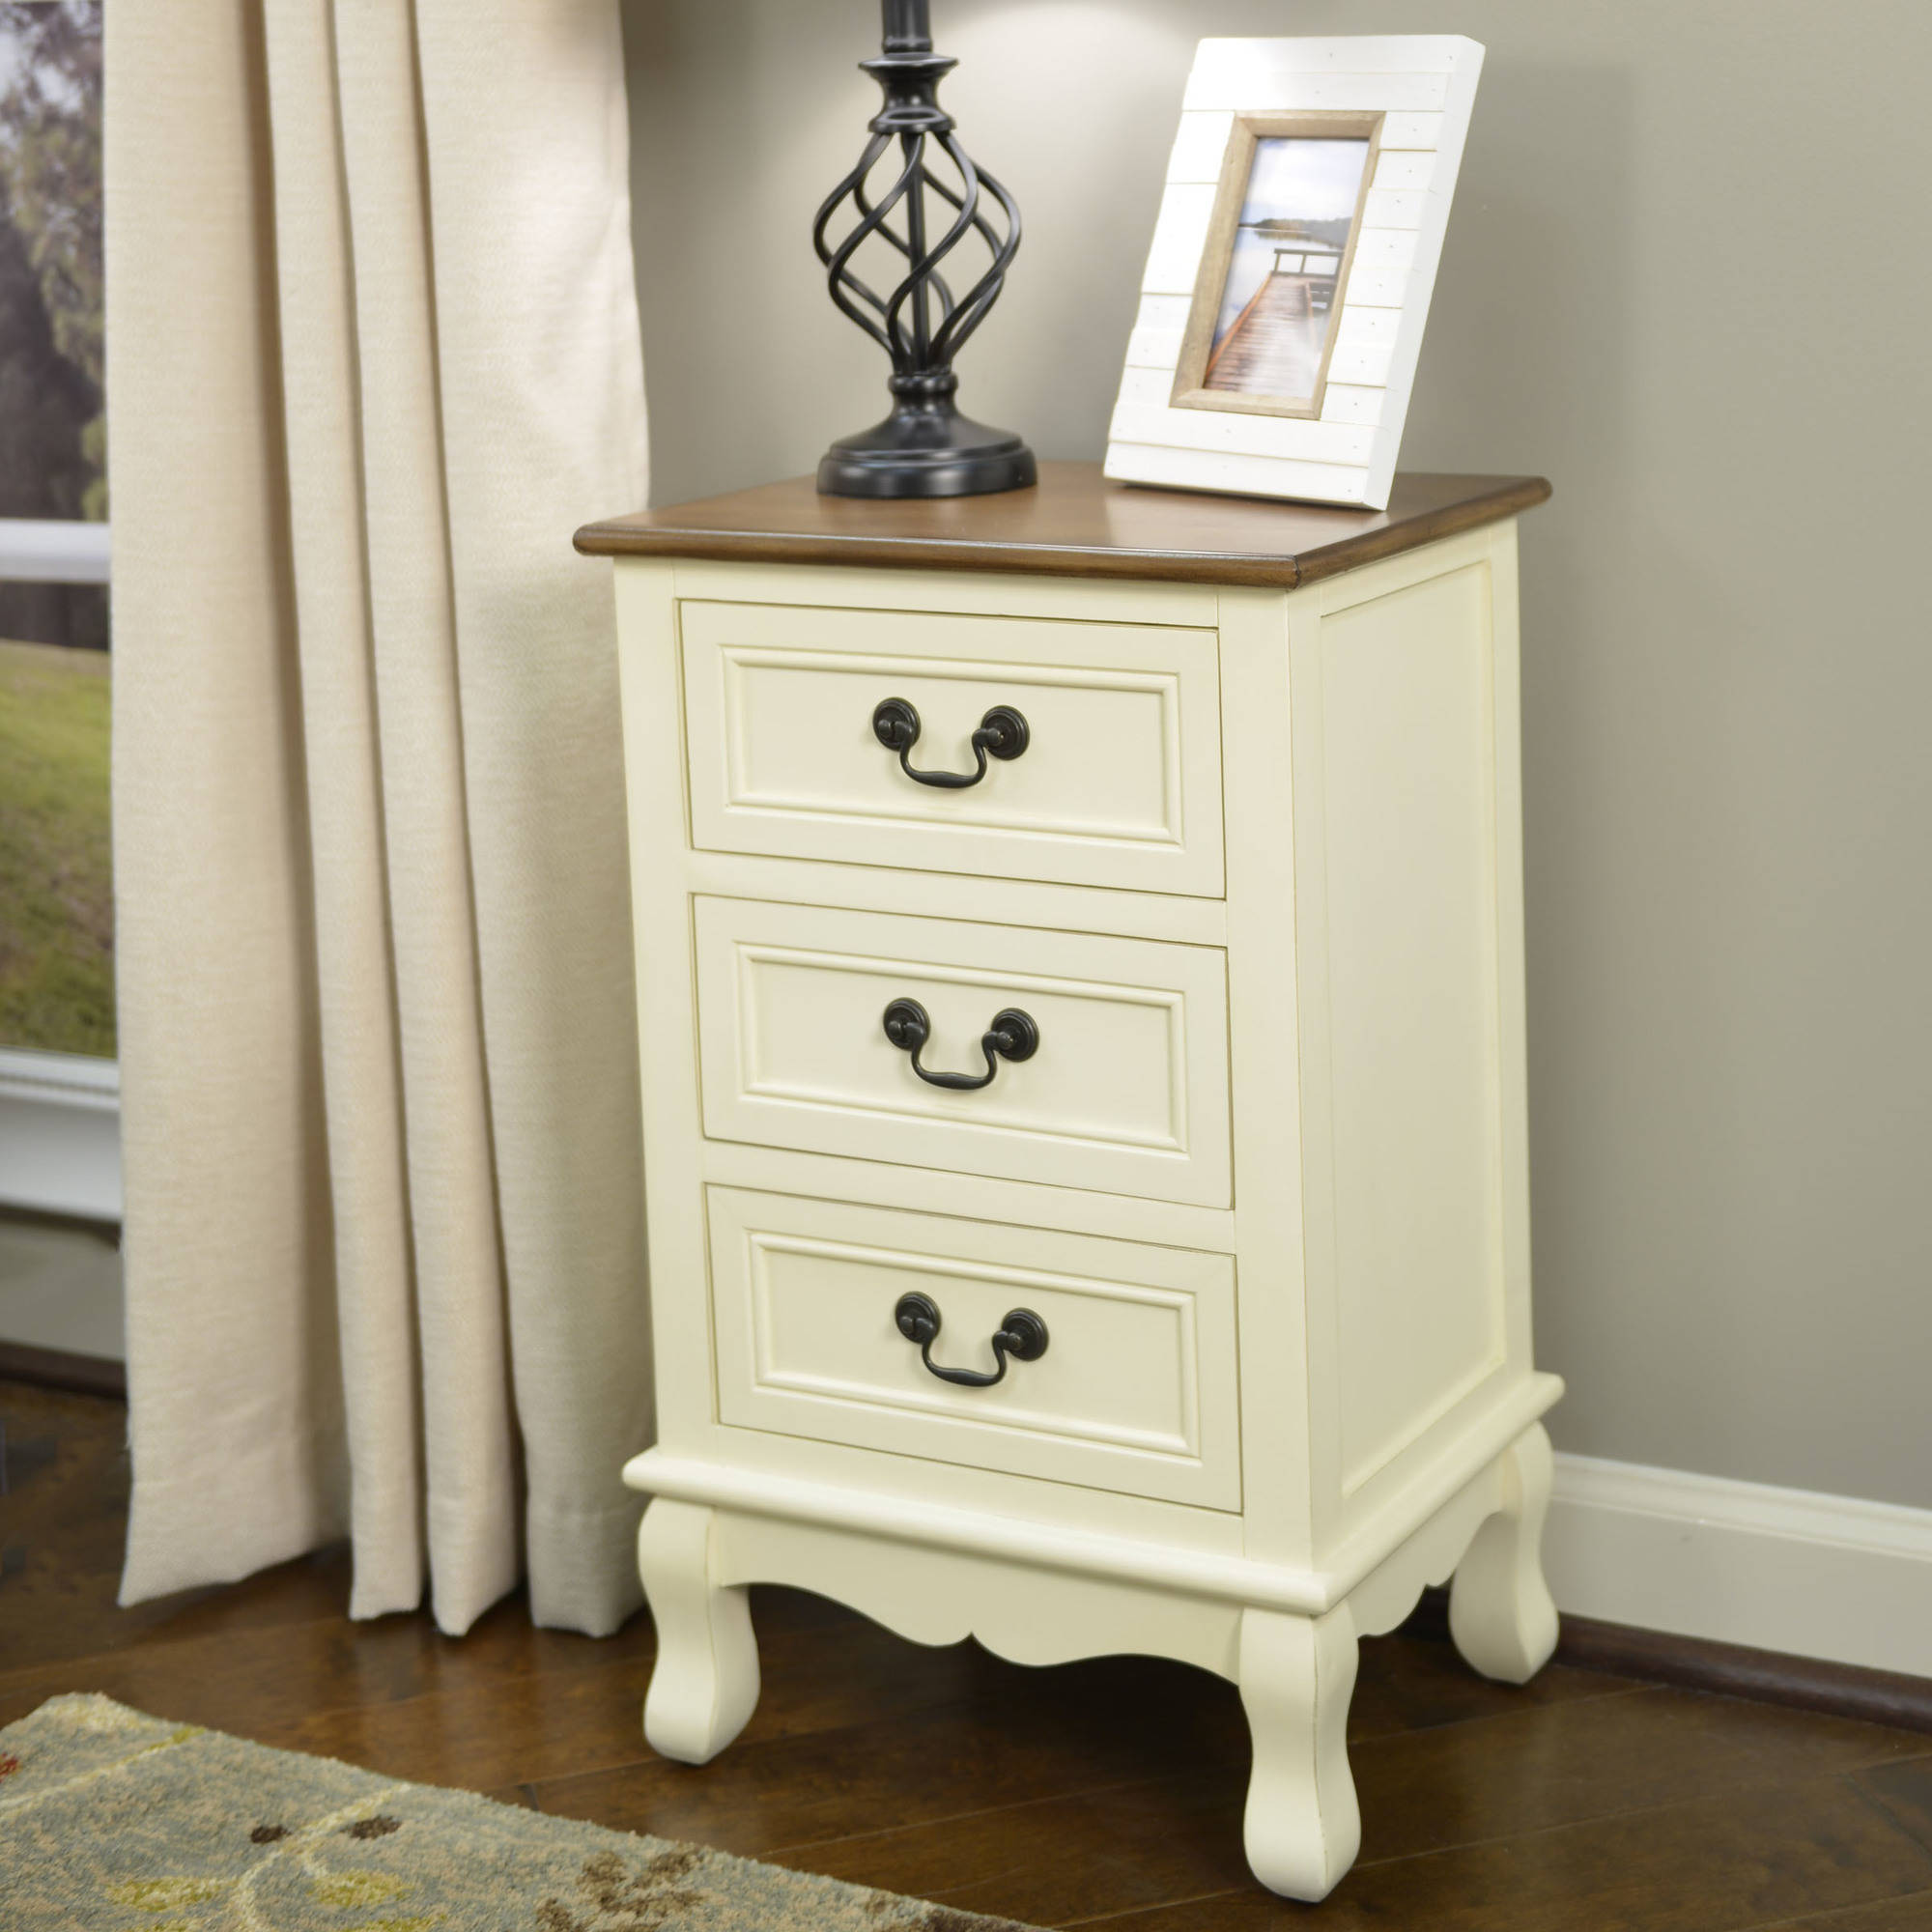 better homes and gardens two tone drawer accent table multiple end with drawers colors kohls jewelry coupon badcock furniture locations small side target dog crates lockable tall